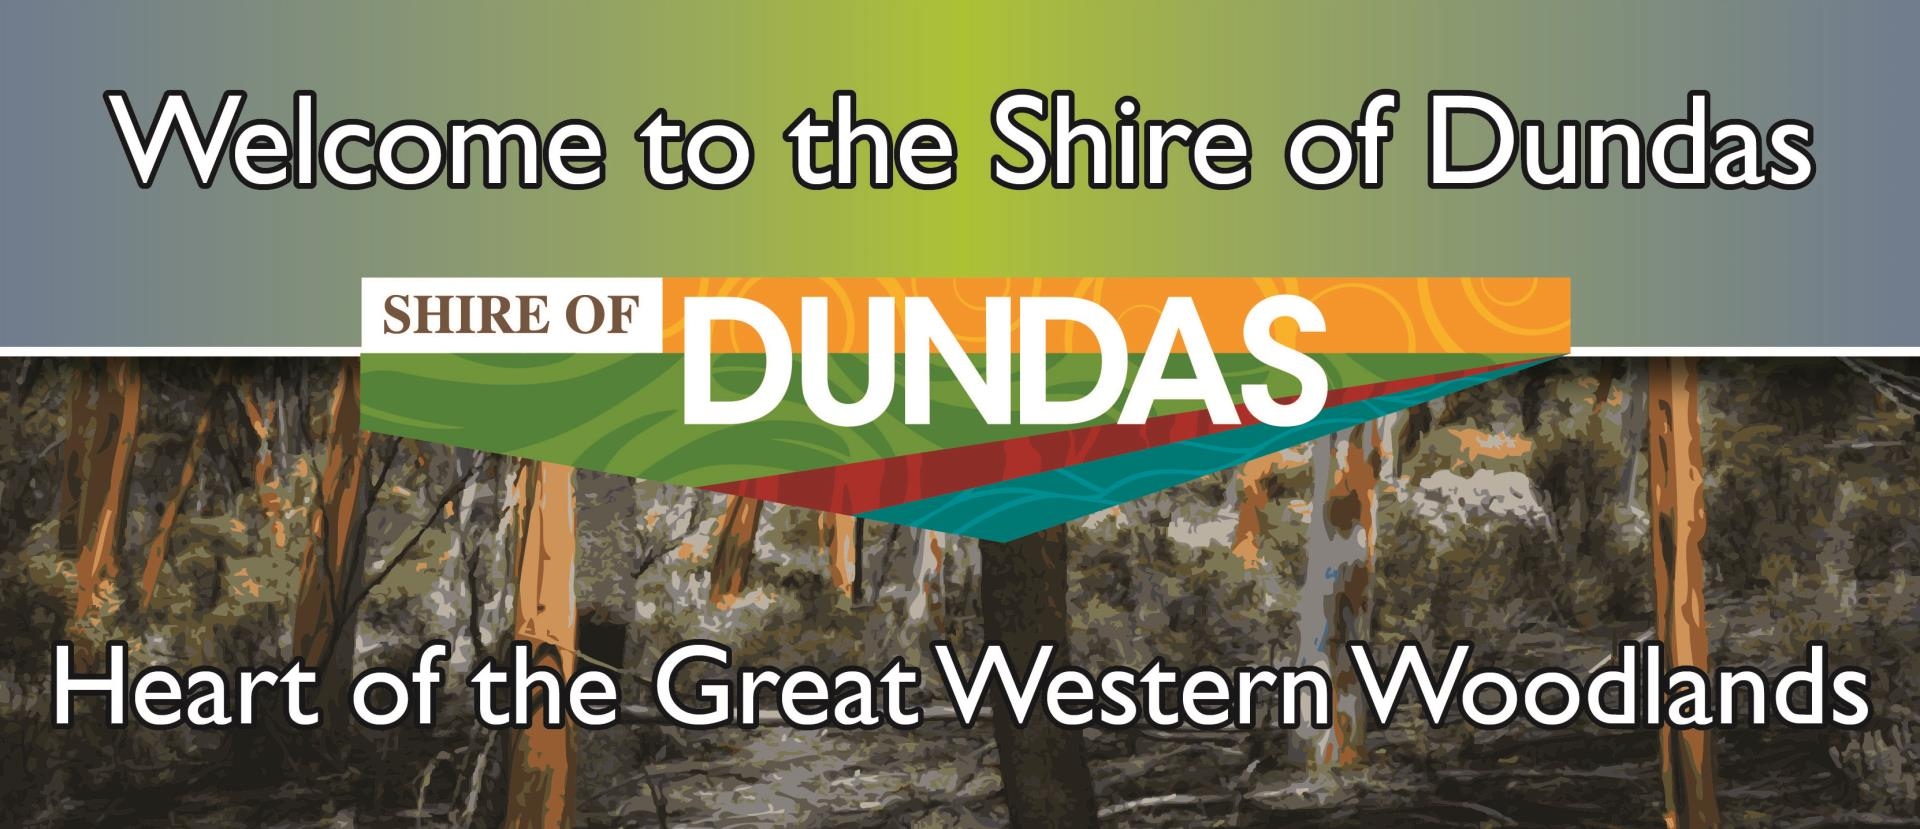 Welcome to the Shire of Dundas